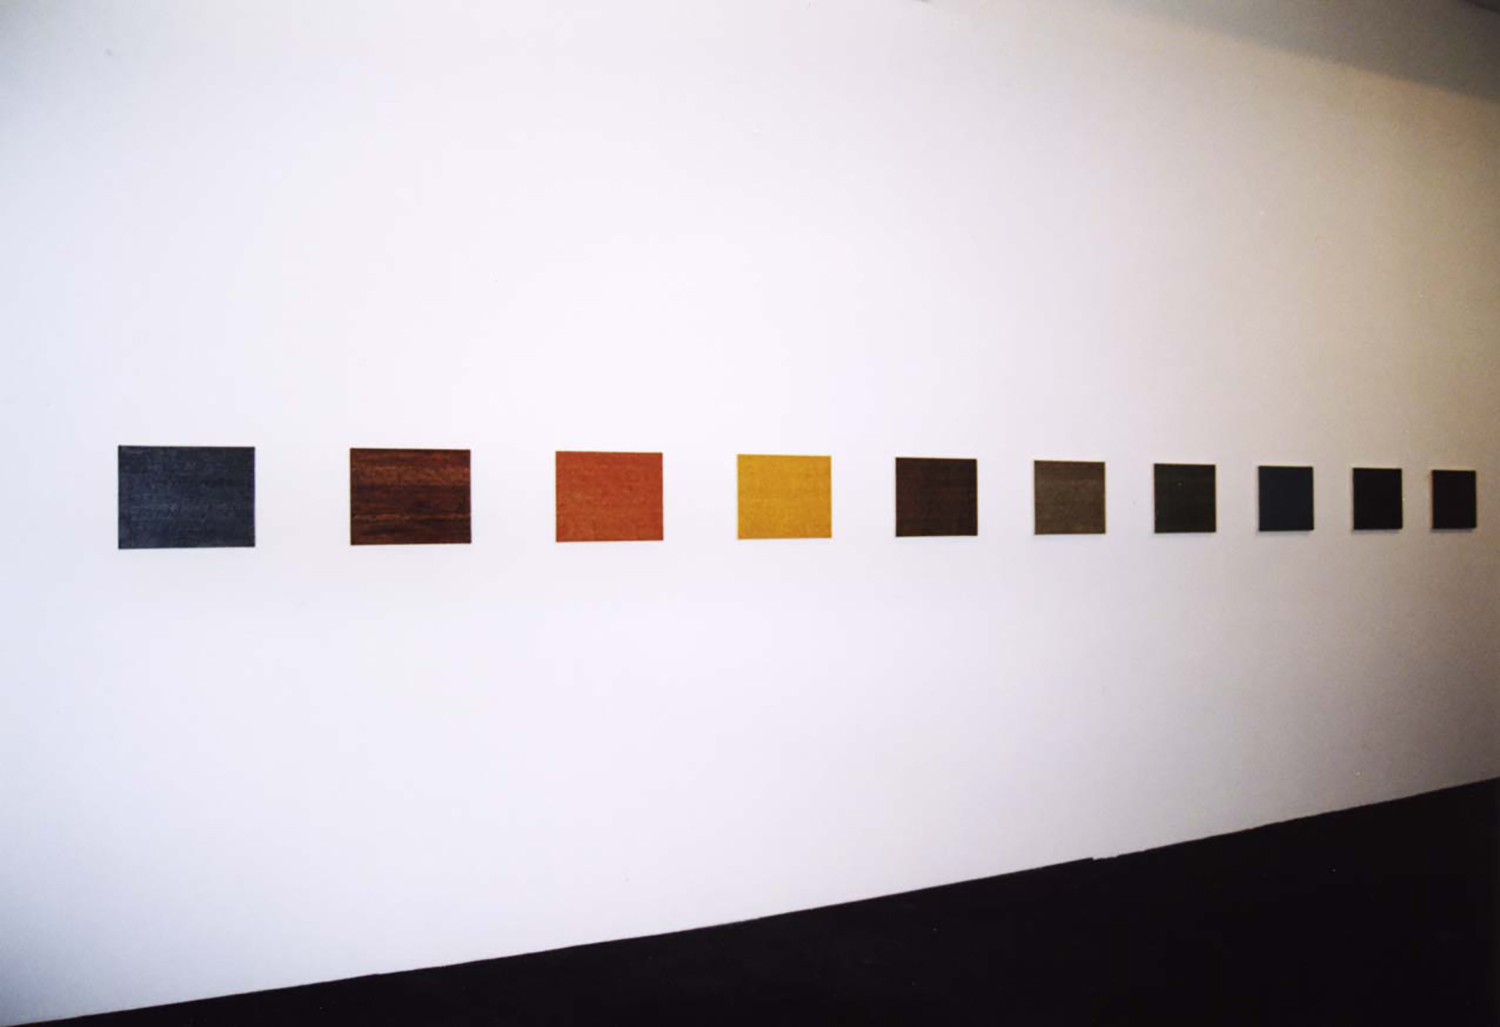 Installation View<br>Untitled - Breath (LK) <br>from left: Charcoal, Umber, Sienna Red, Ochre, Dark Umber, Green Grey Lt., Green Grey Dk., Blue Grey, Blue Green, Green Ochre<br>oil on canvas 40.9 x 31.8 cm 1999 each